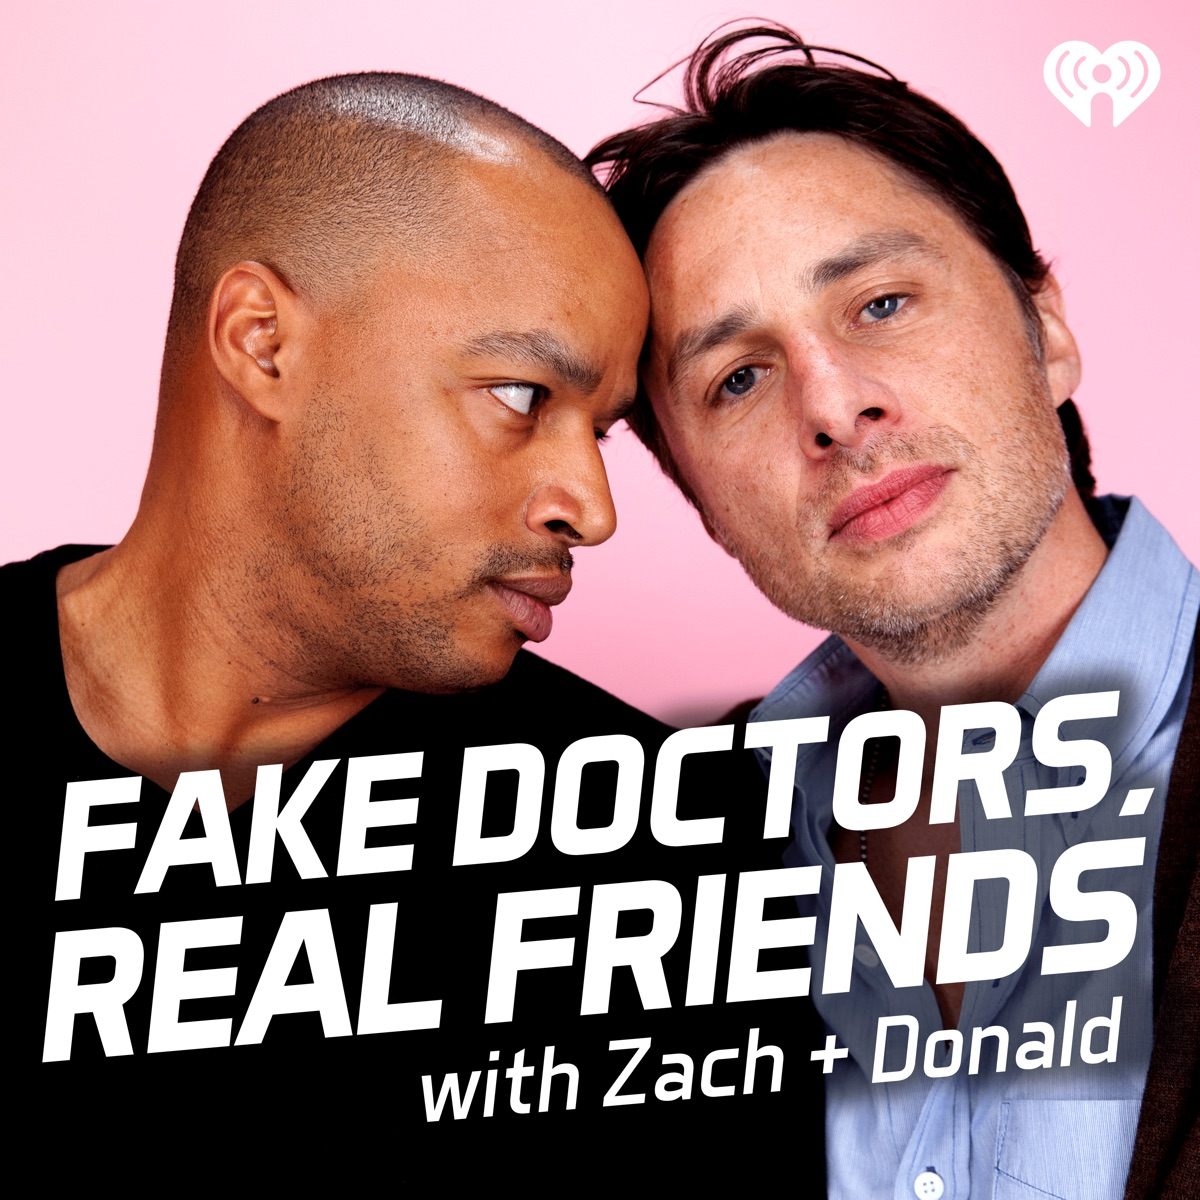 Fake Doctors, Real Friends with Zach and Donald